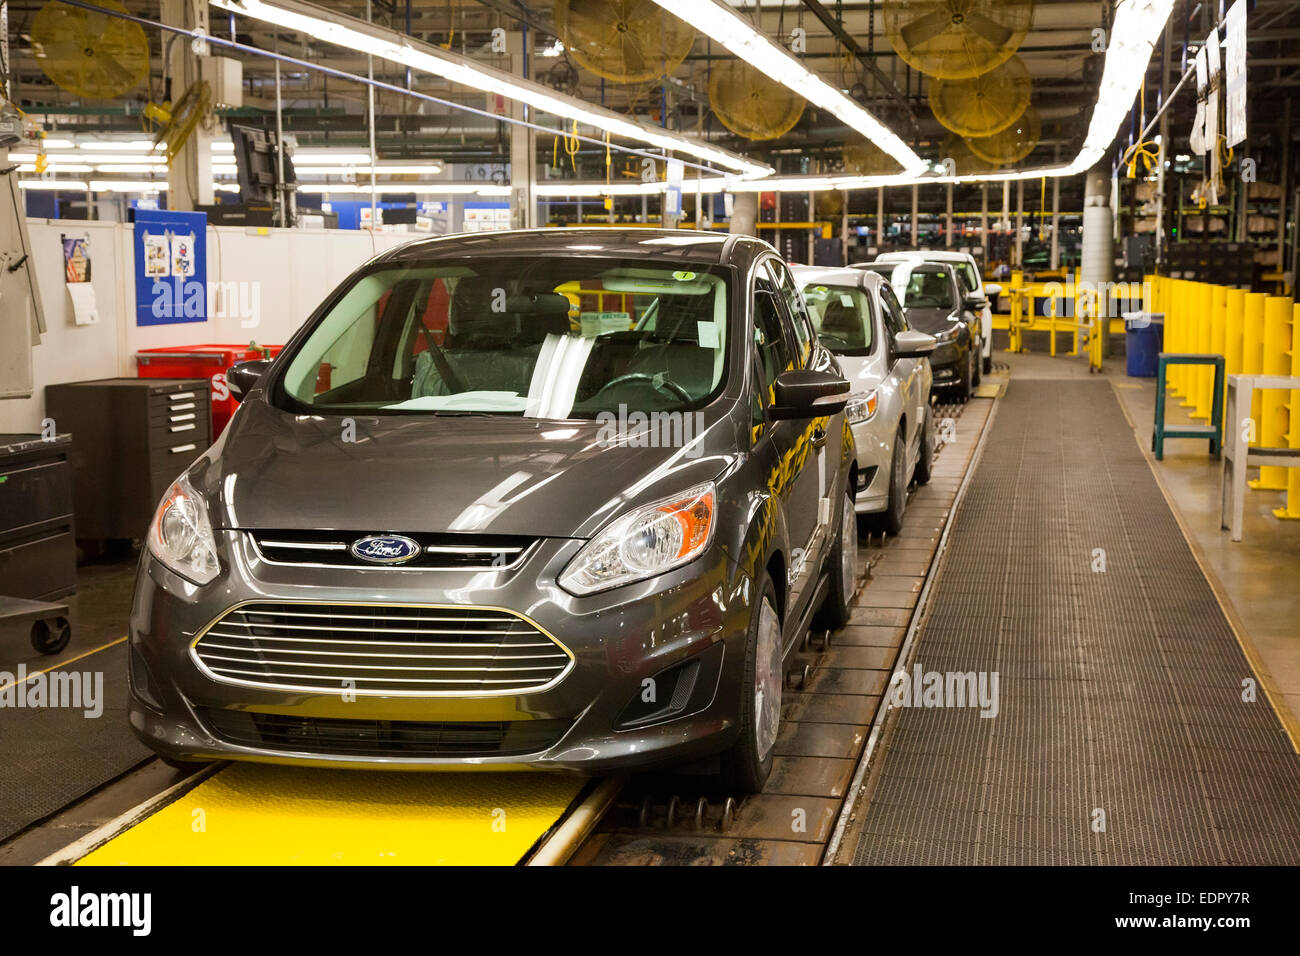 Wayne, Michigan - Le Ford C-Max Hybrid à l'usine de montage de Ford au Michigan. Photo Stock